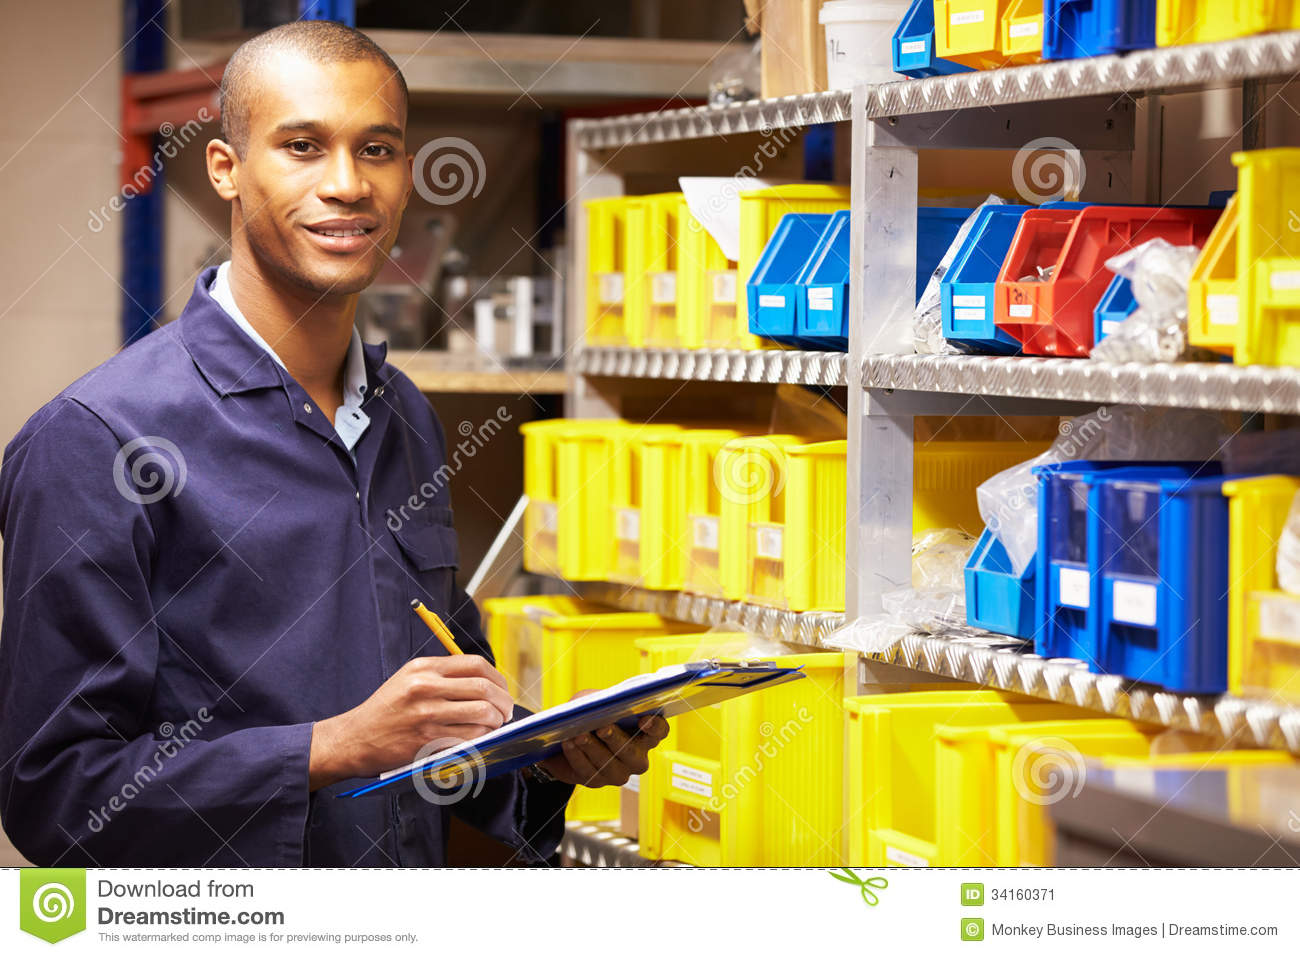 worker checking stock levels in store room stock image image worker checking stock levels in store room